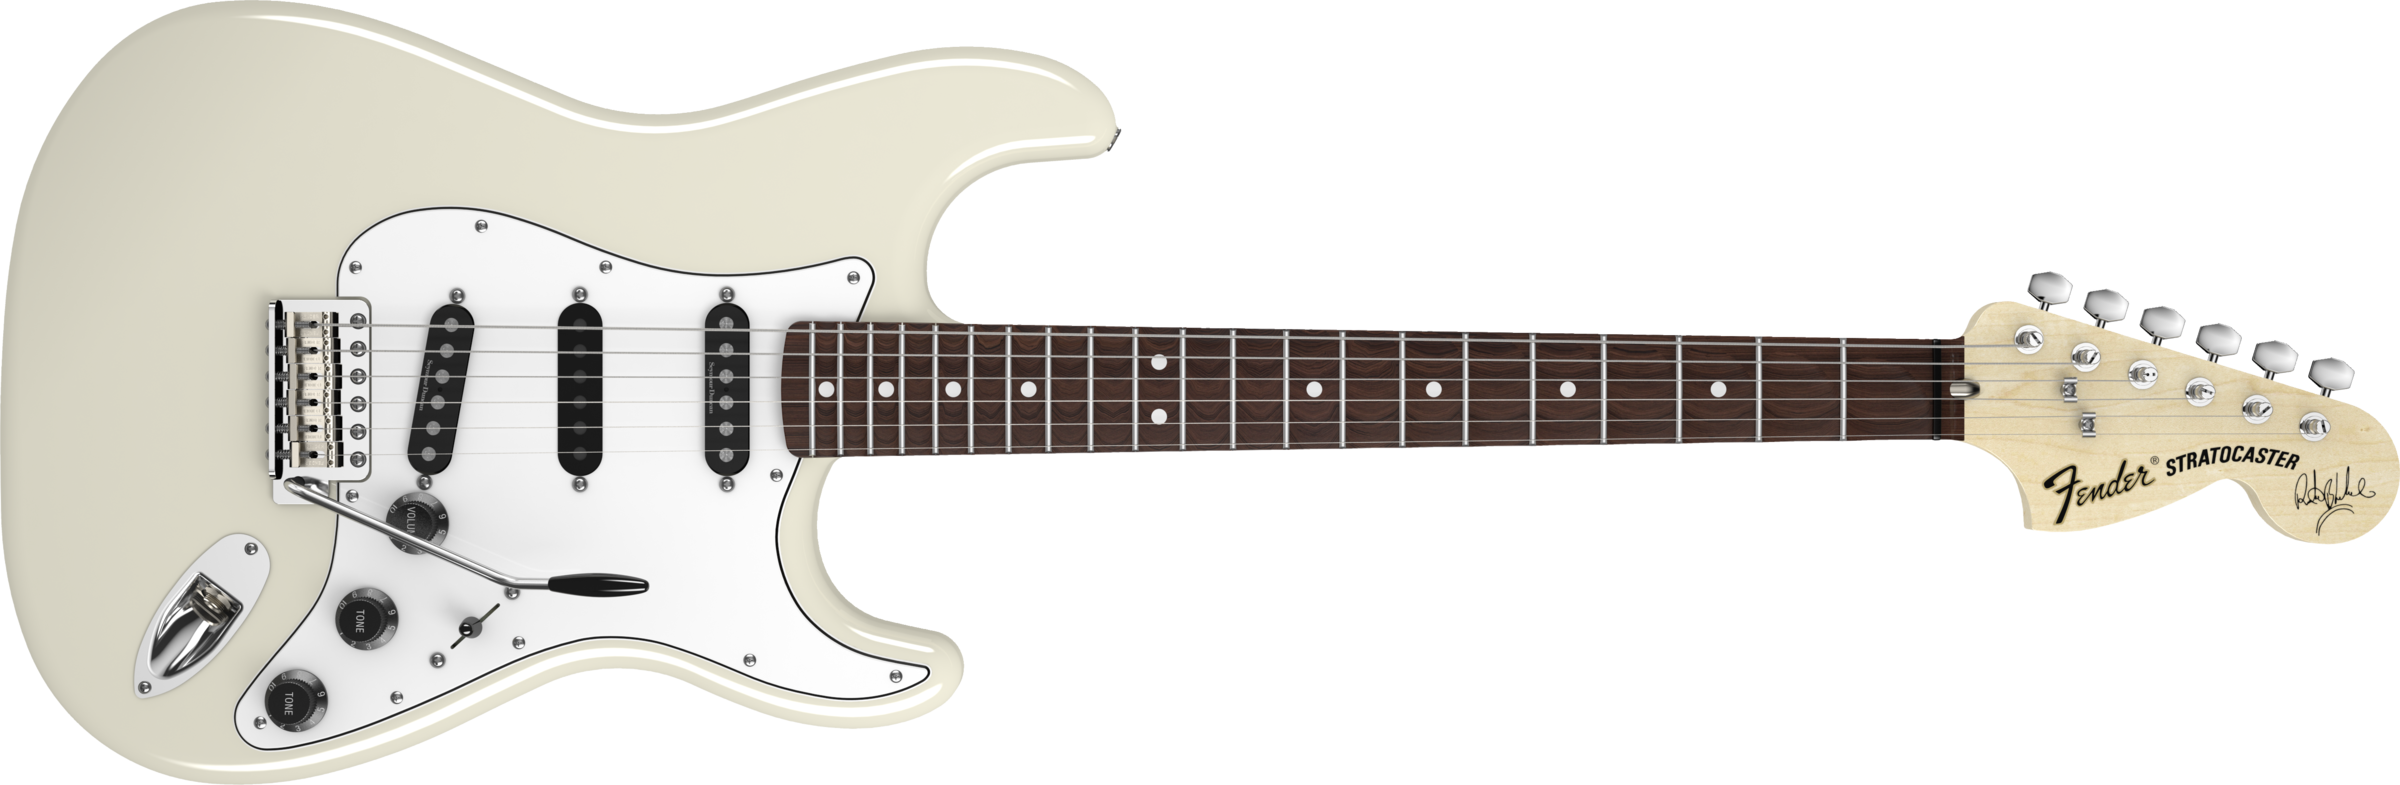 Ritchie Blackmore Stratocaster Scalloped Rosewood Fingerboard Olympic White Guitar Acoustic Bass Guitar Electric Guitar